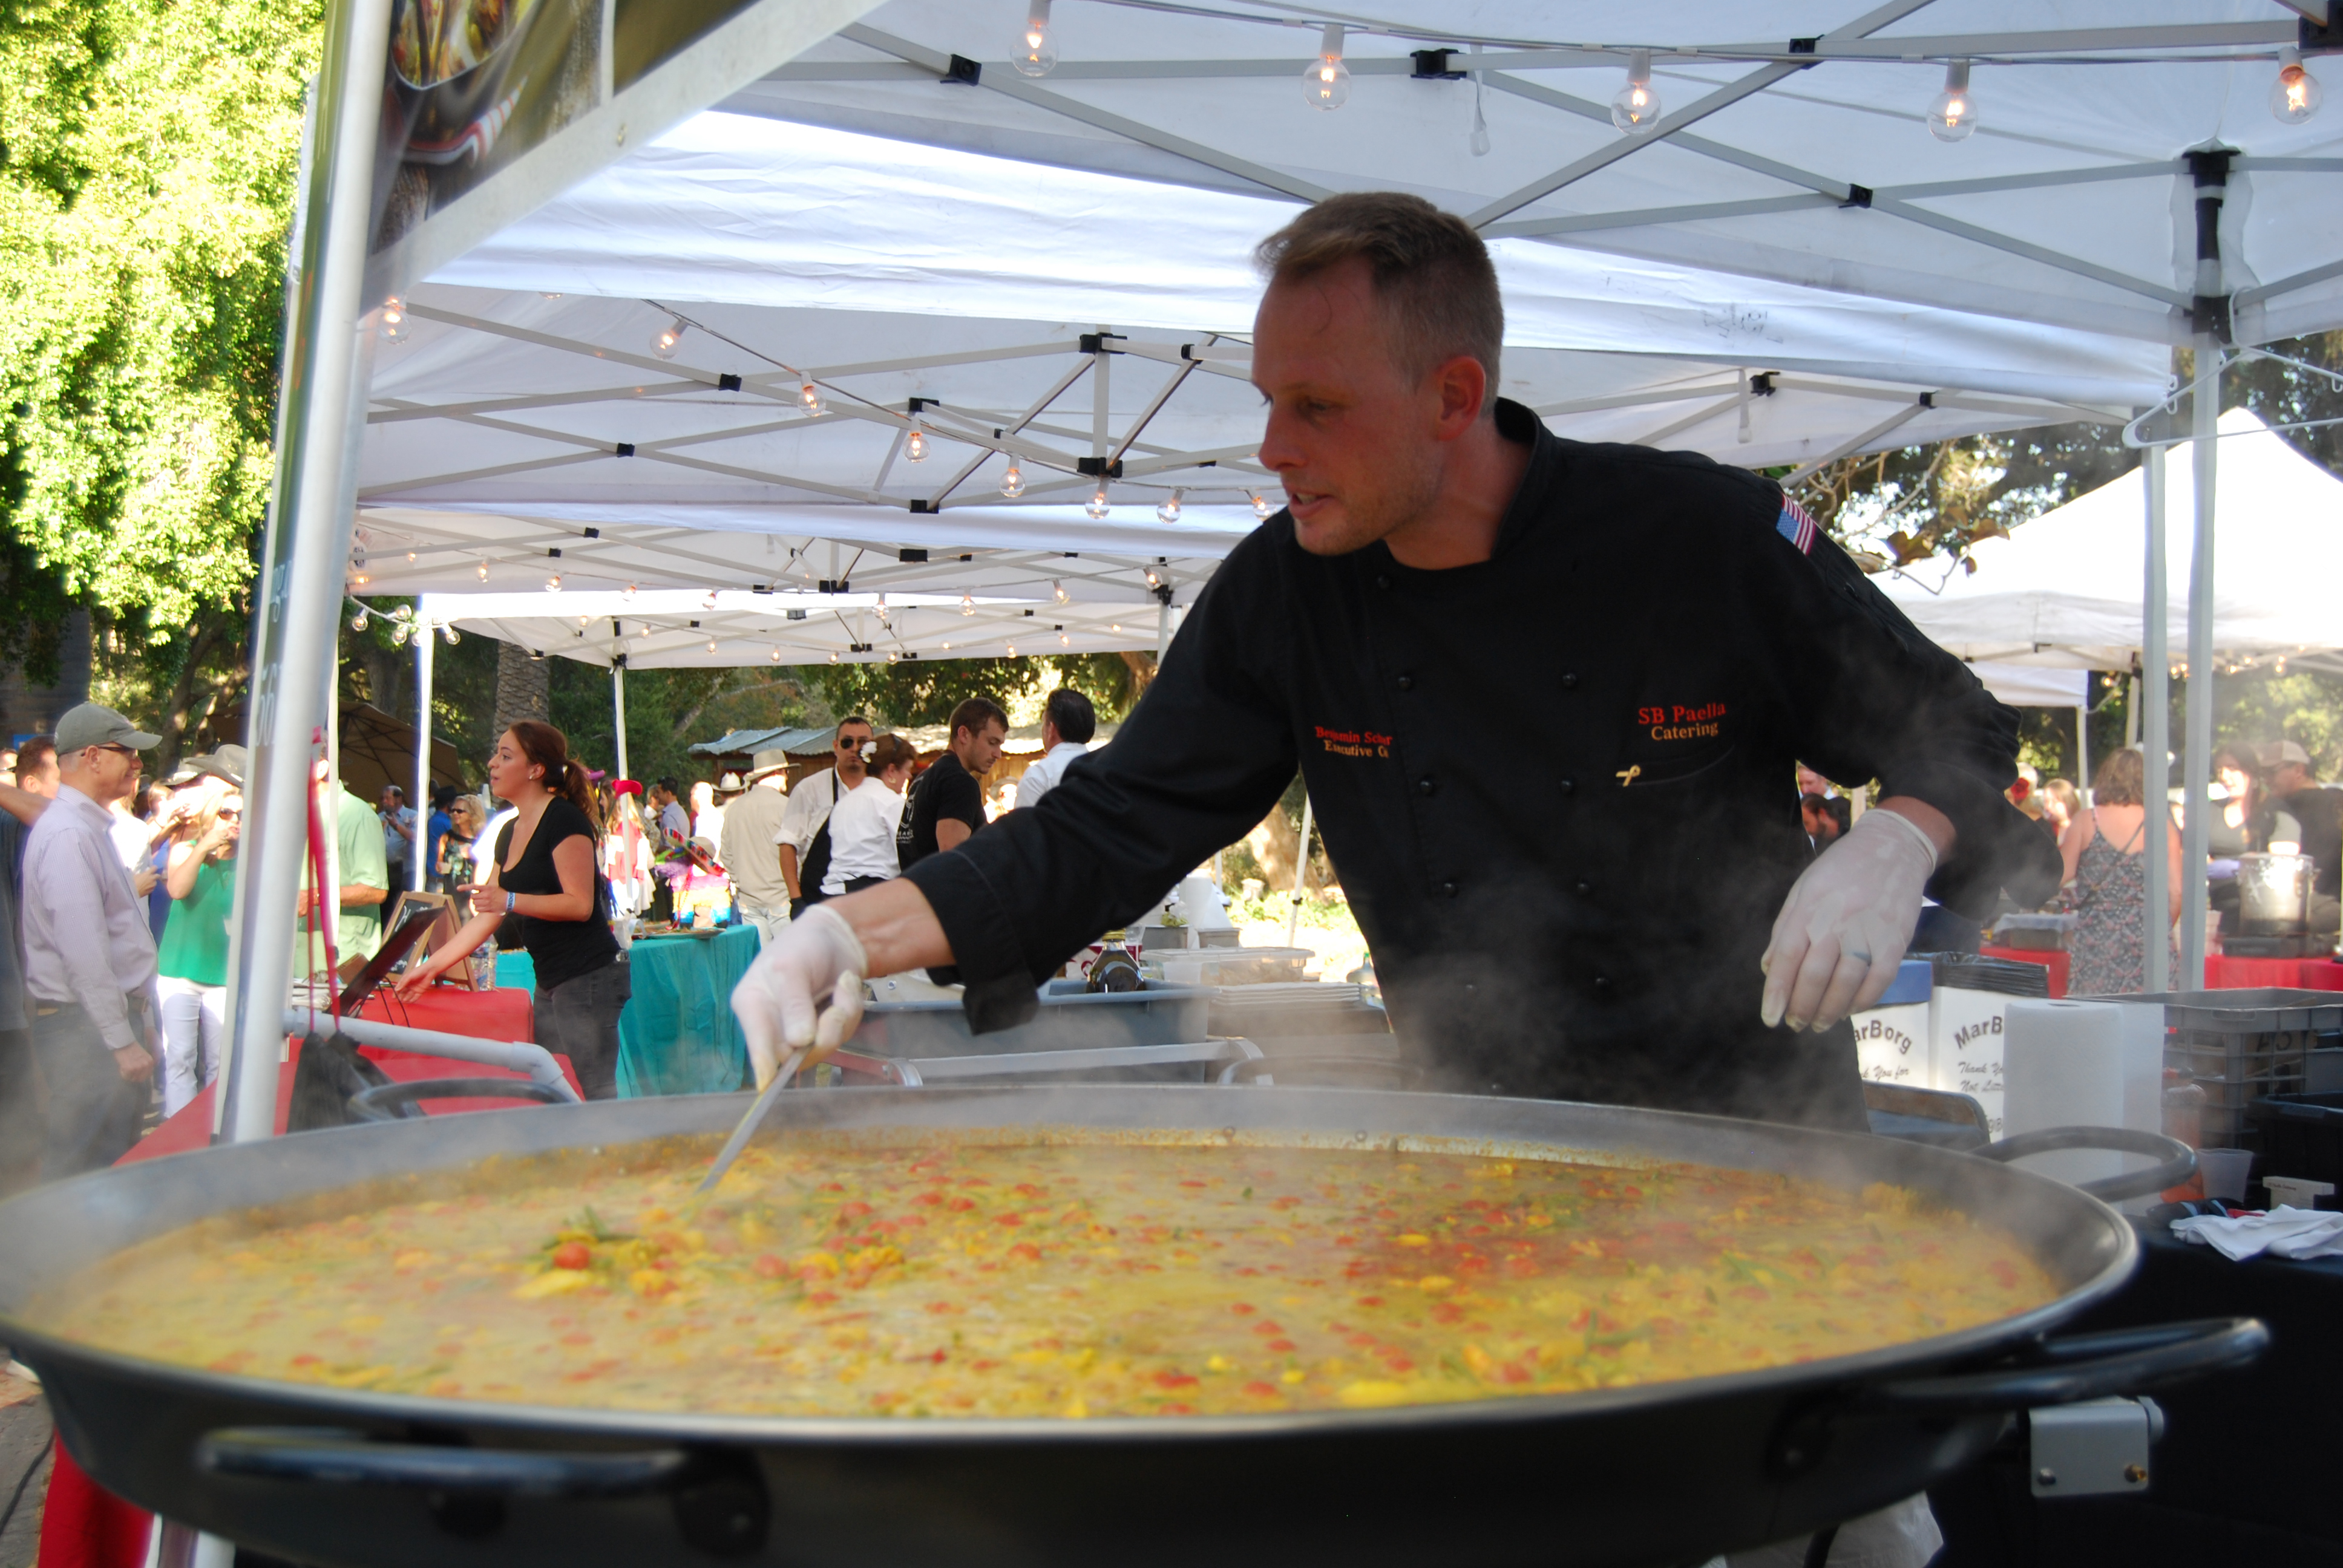 Santa Barbara Paella Catering and its custom paella pan were a popular attraction at Fiesta Ranchera.